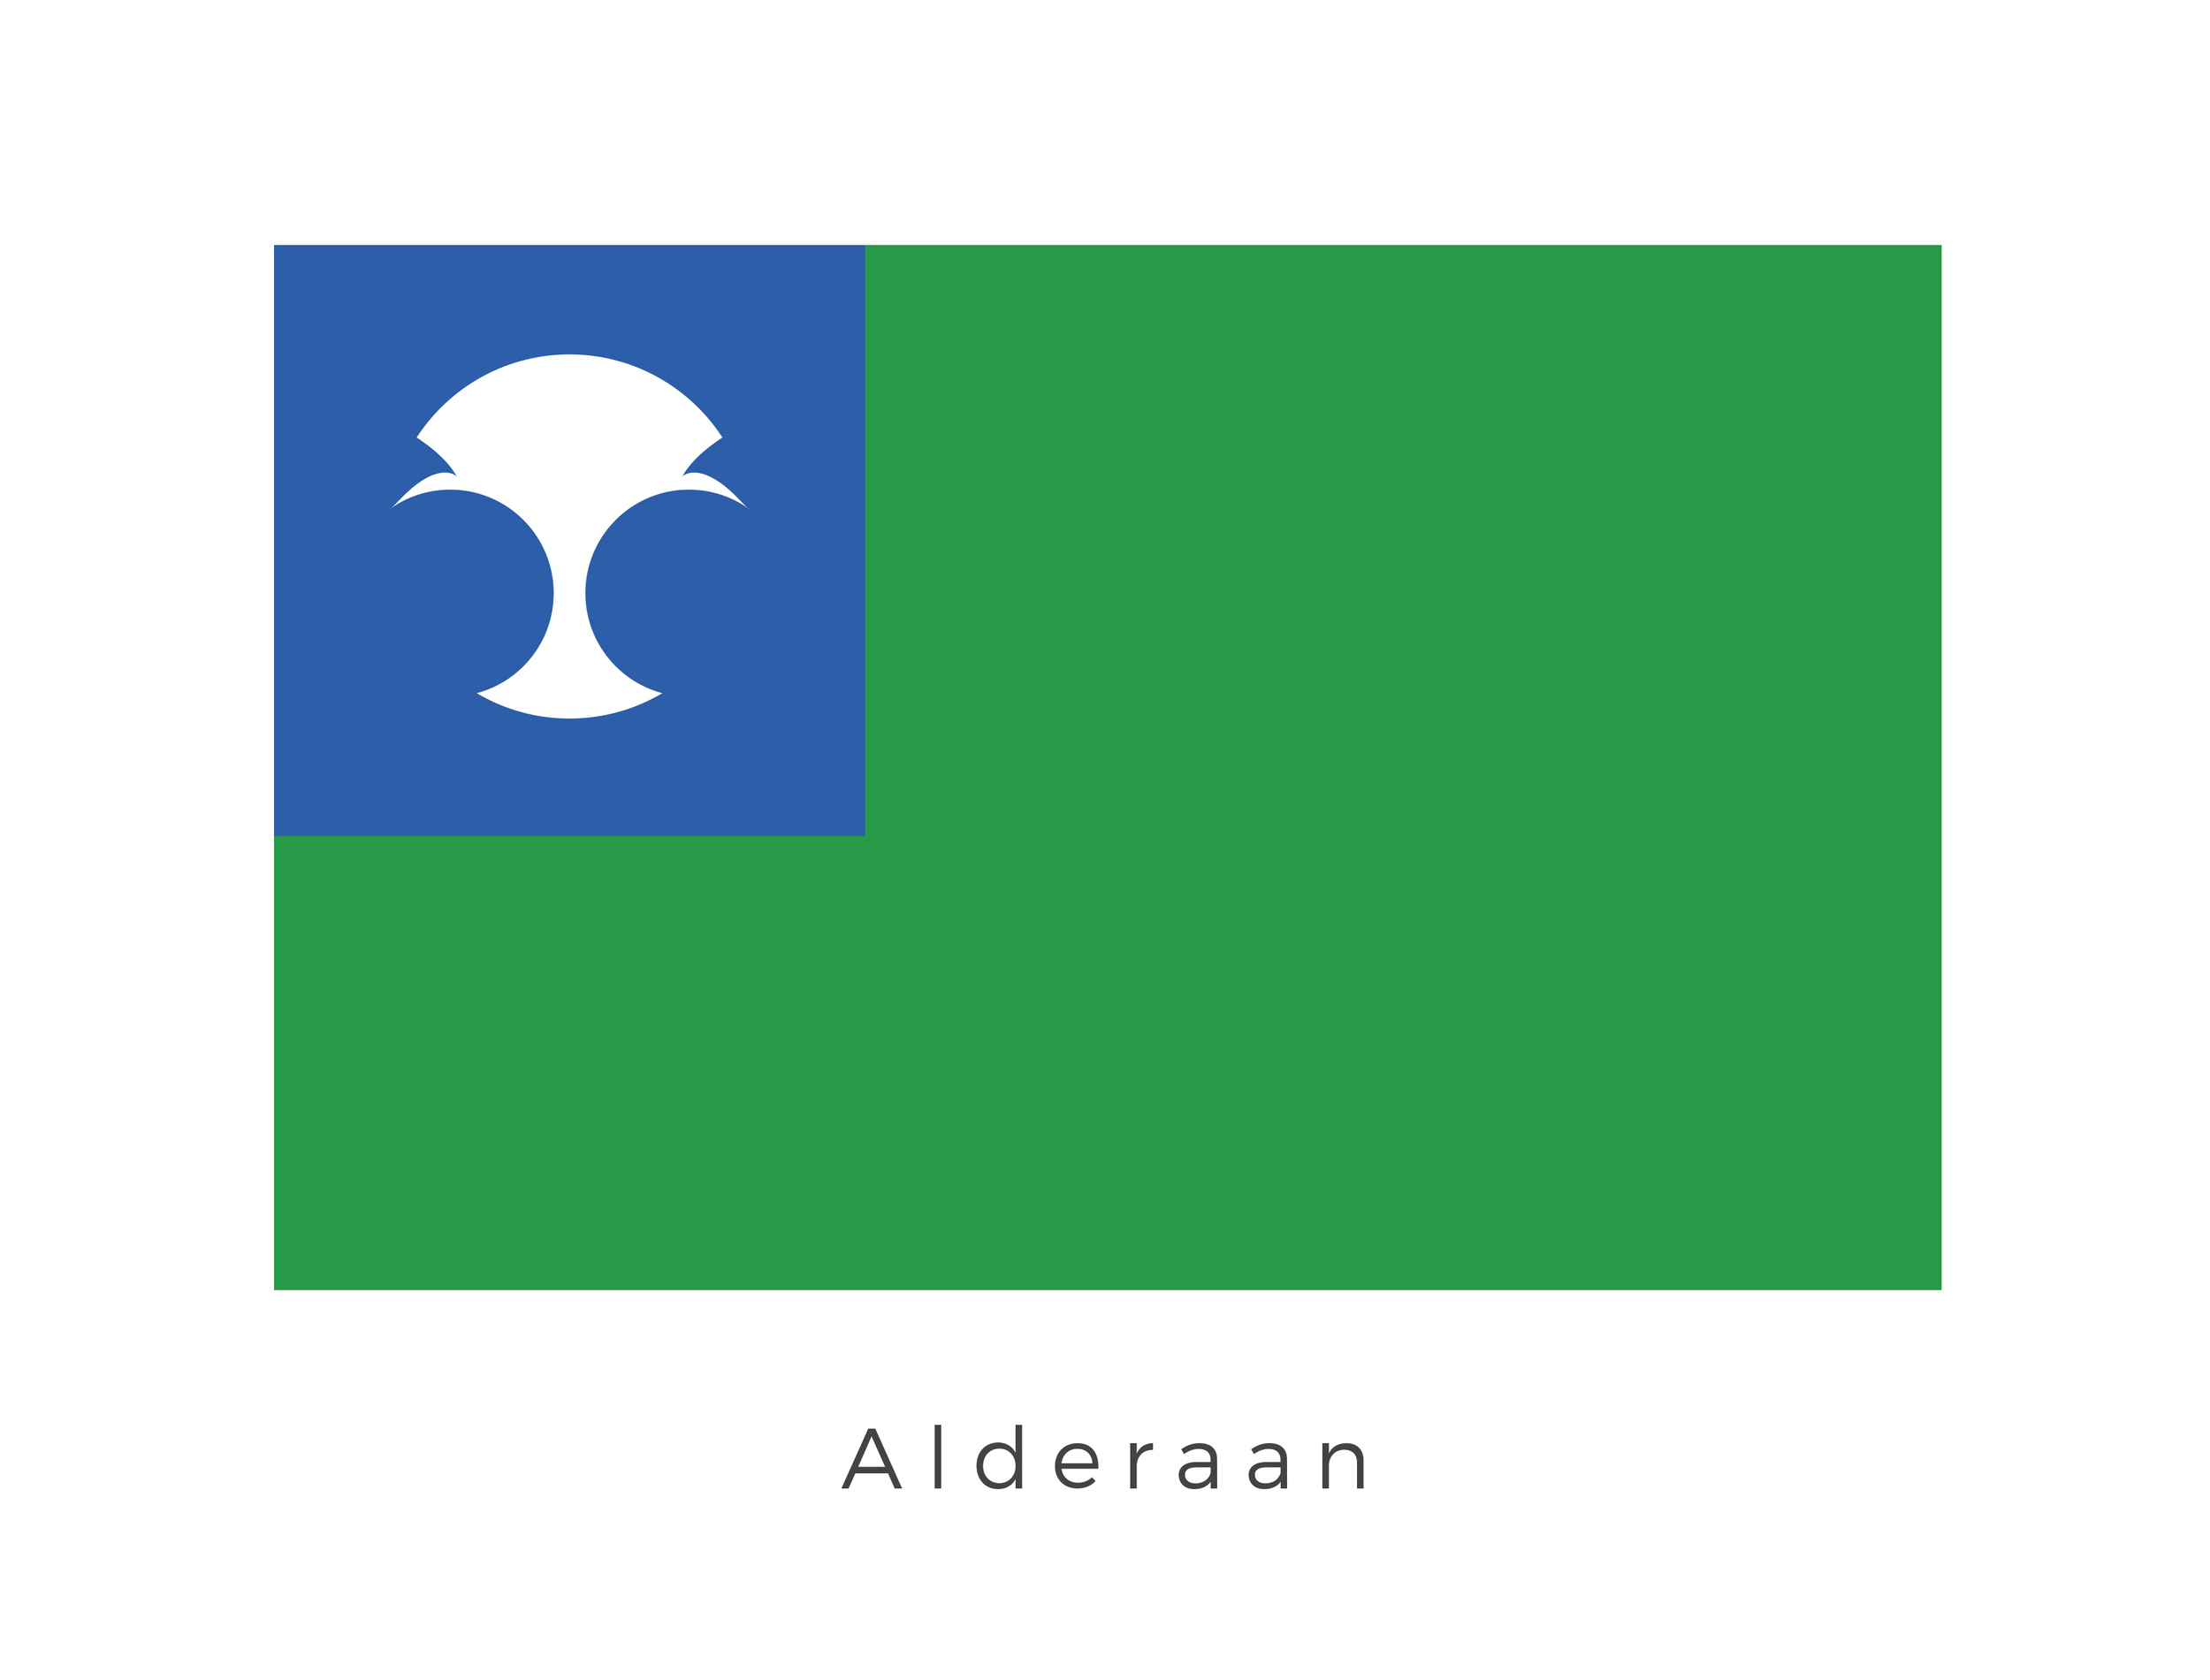 Alderaan , located in the Core Worlds, was the second planet in the Alderaan system. It was renowned galaxy-wide for it's unspoiled beauty, refined culture, and commitment to peace. Alderaanians worked with and around the land to preserve as much of their natural surroundings as they could, the green of the flag signifies this commitment. The white graphic was used on all products exported from Alderaan, signifying its quality and refinement. The deep blue is a nod to Alderaans long term support of the Galactic republic.